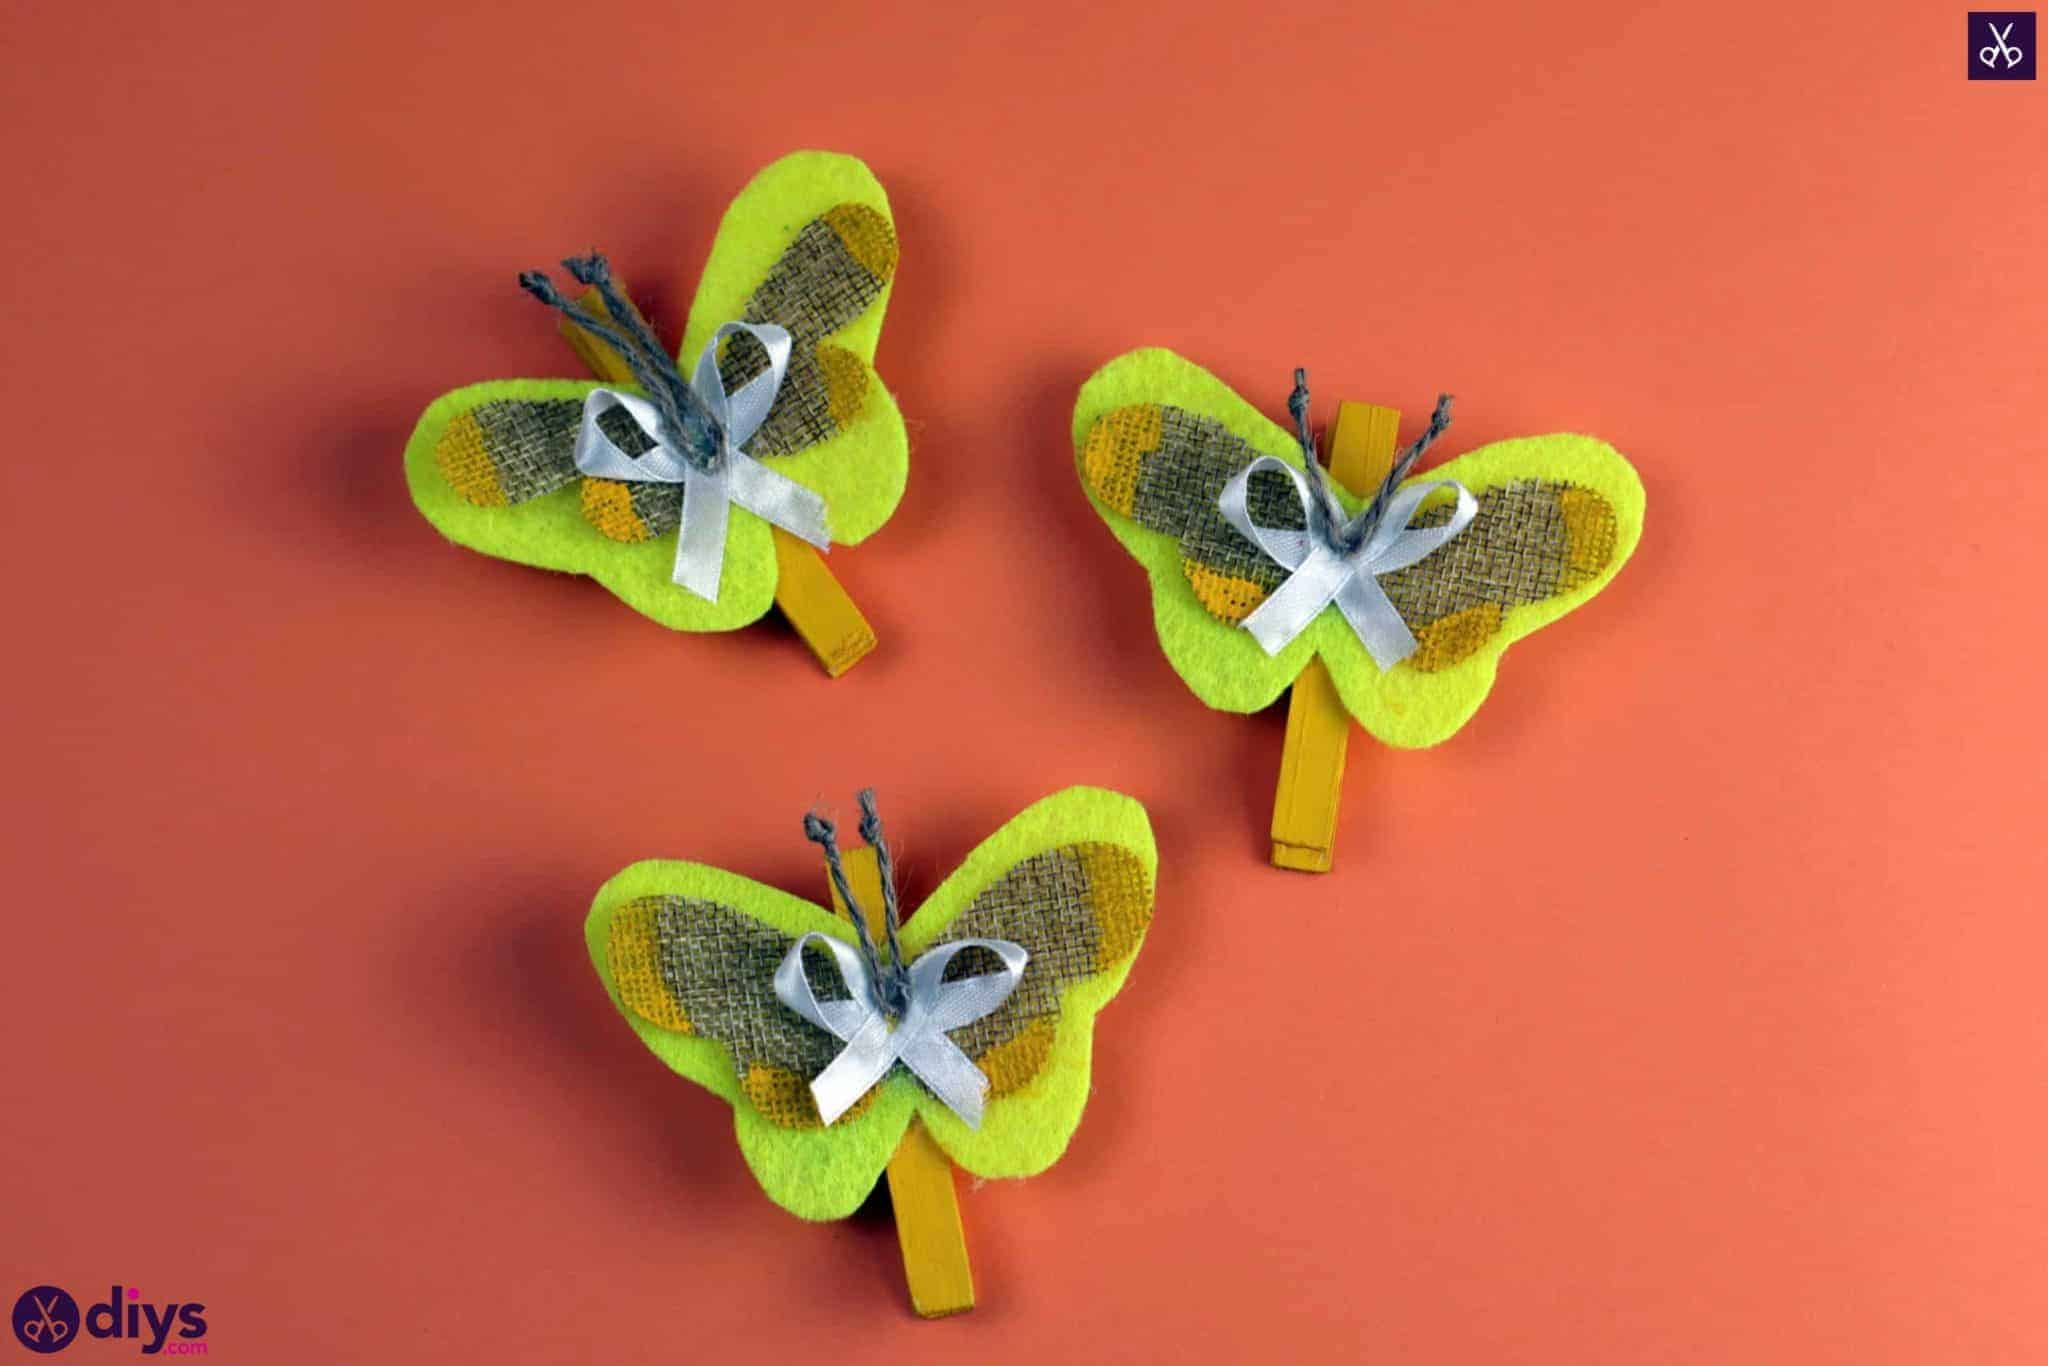 How to craft a butterfly from a clothespin simple colorful project 2048x1366